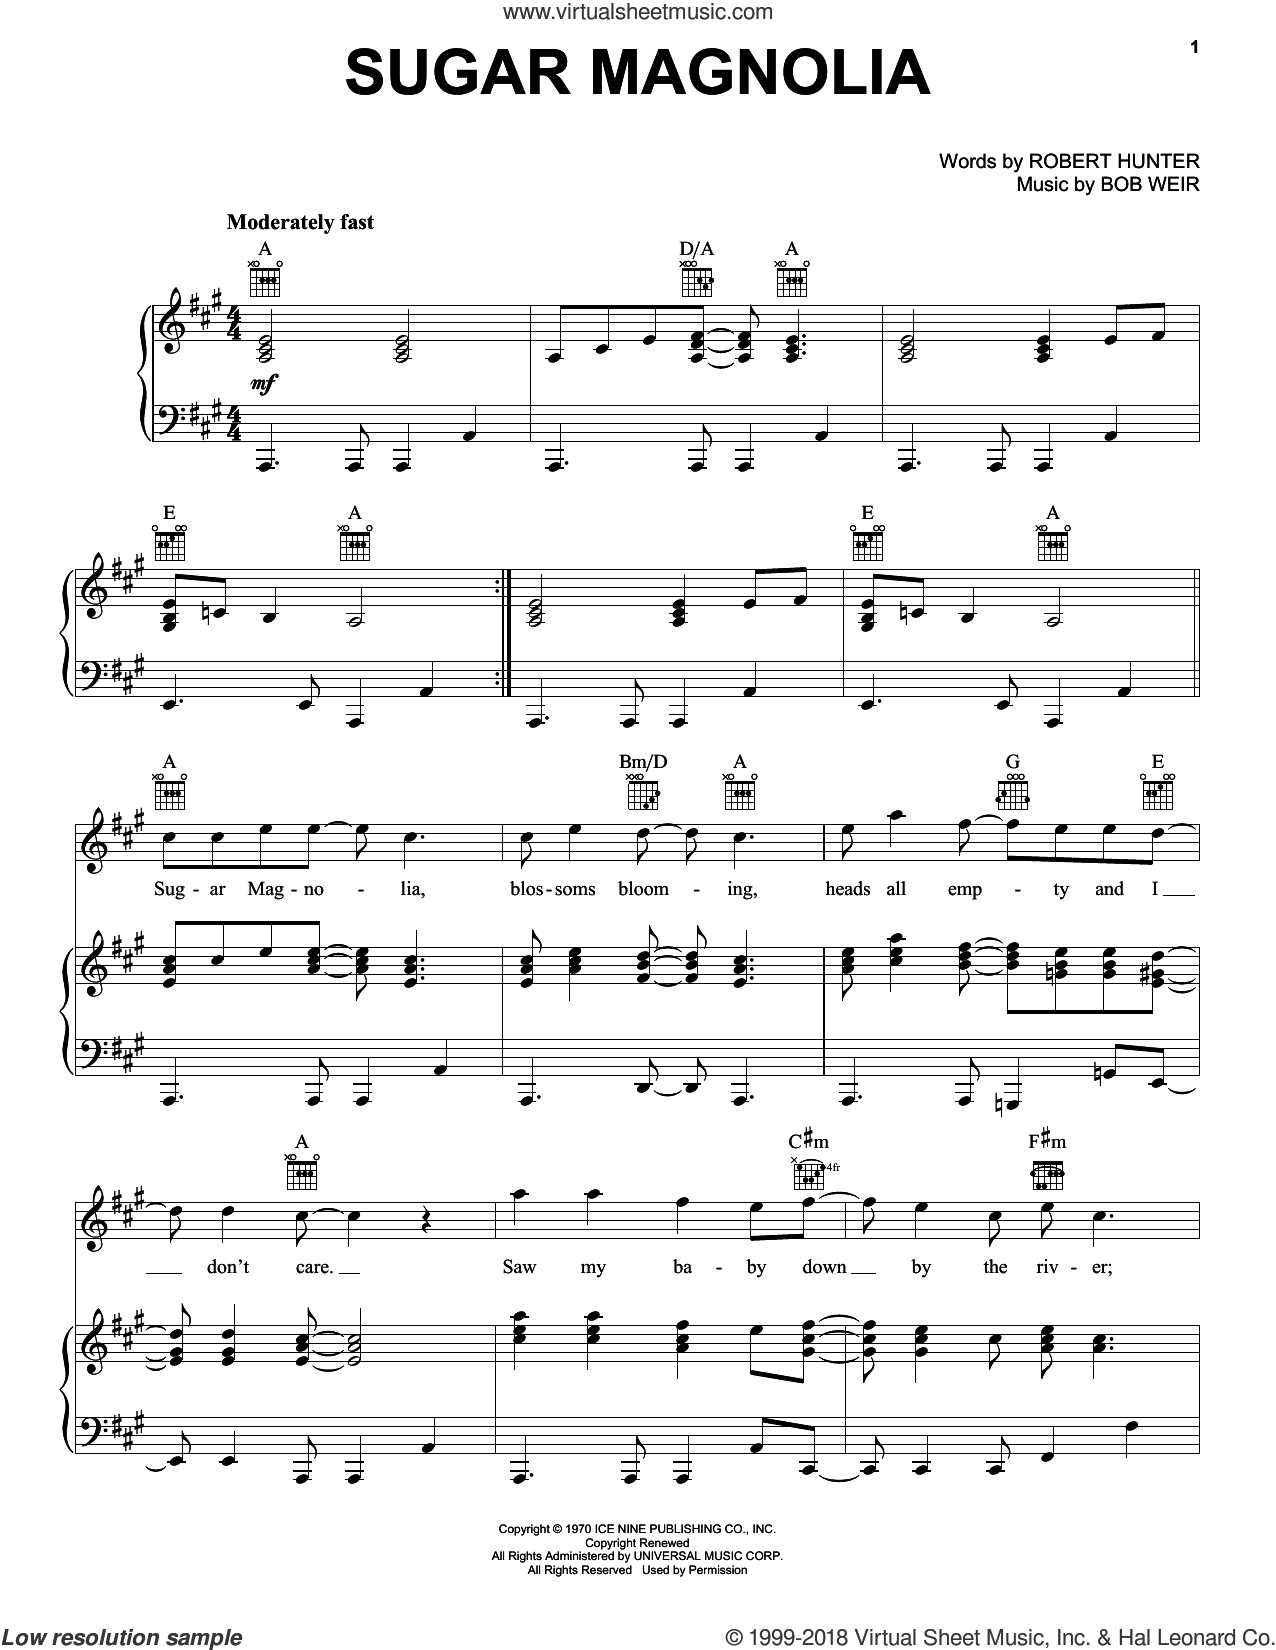 Sugar Magnolia sheet music for voice, piano or guitar by Grateful Dead, Bob Weir and Robert Hunter, intermediate skill level